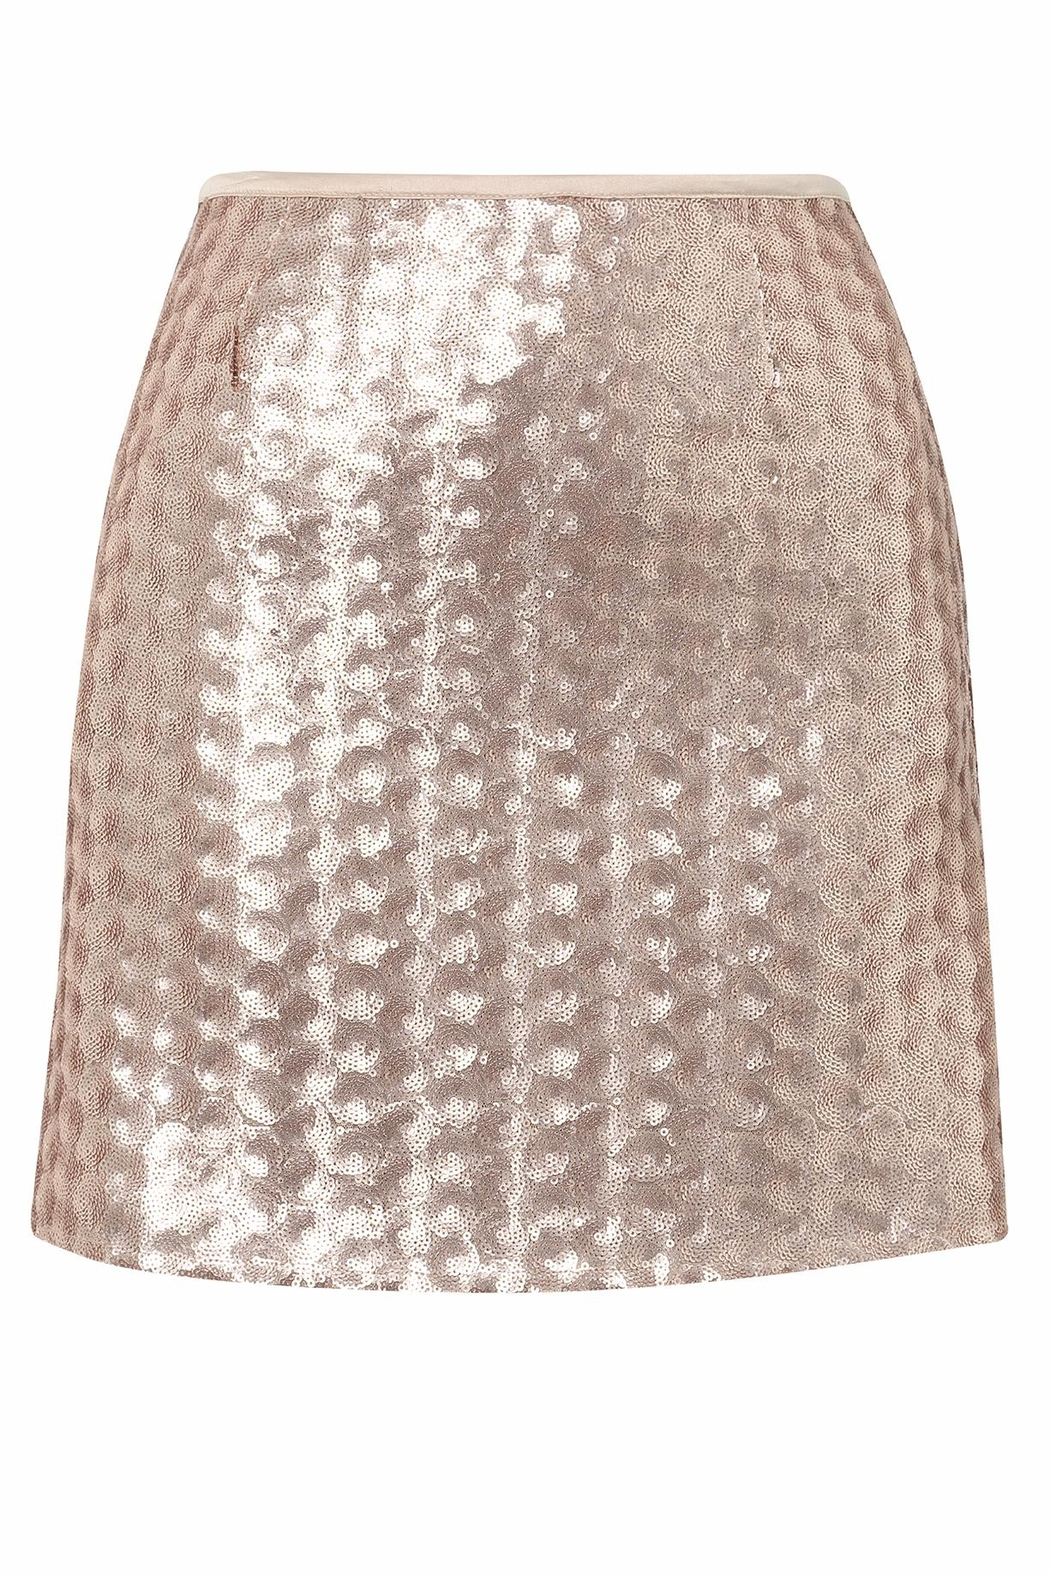 UNREAL FUR Sequin Mini Skirt - Front Cropped Image